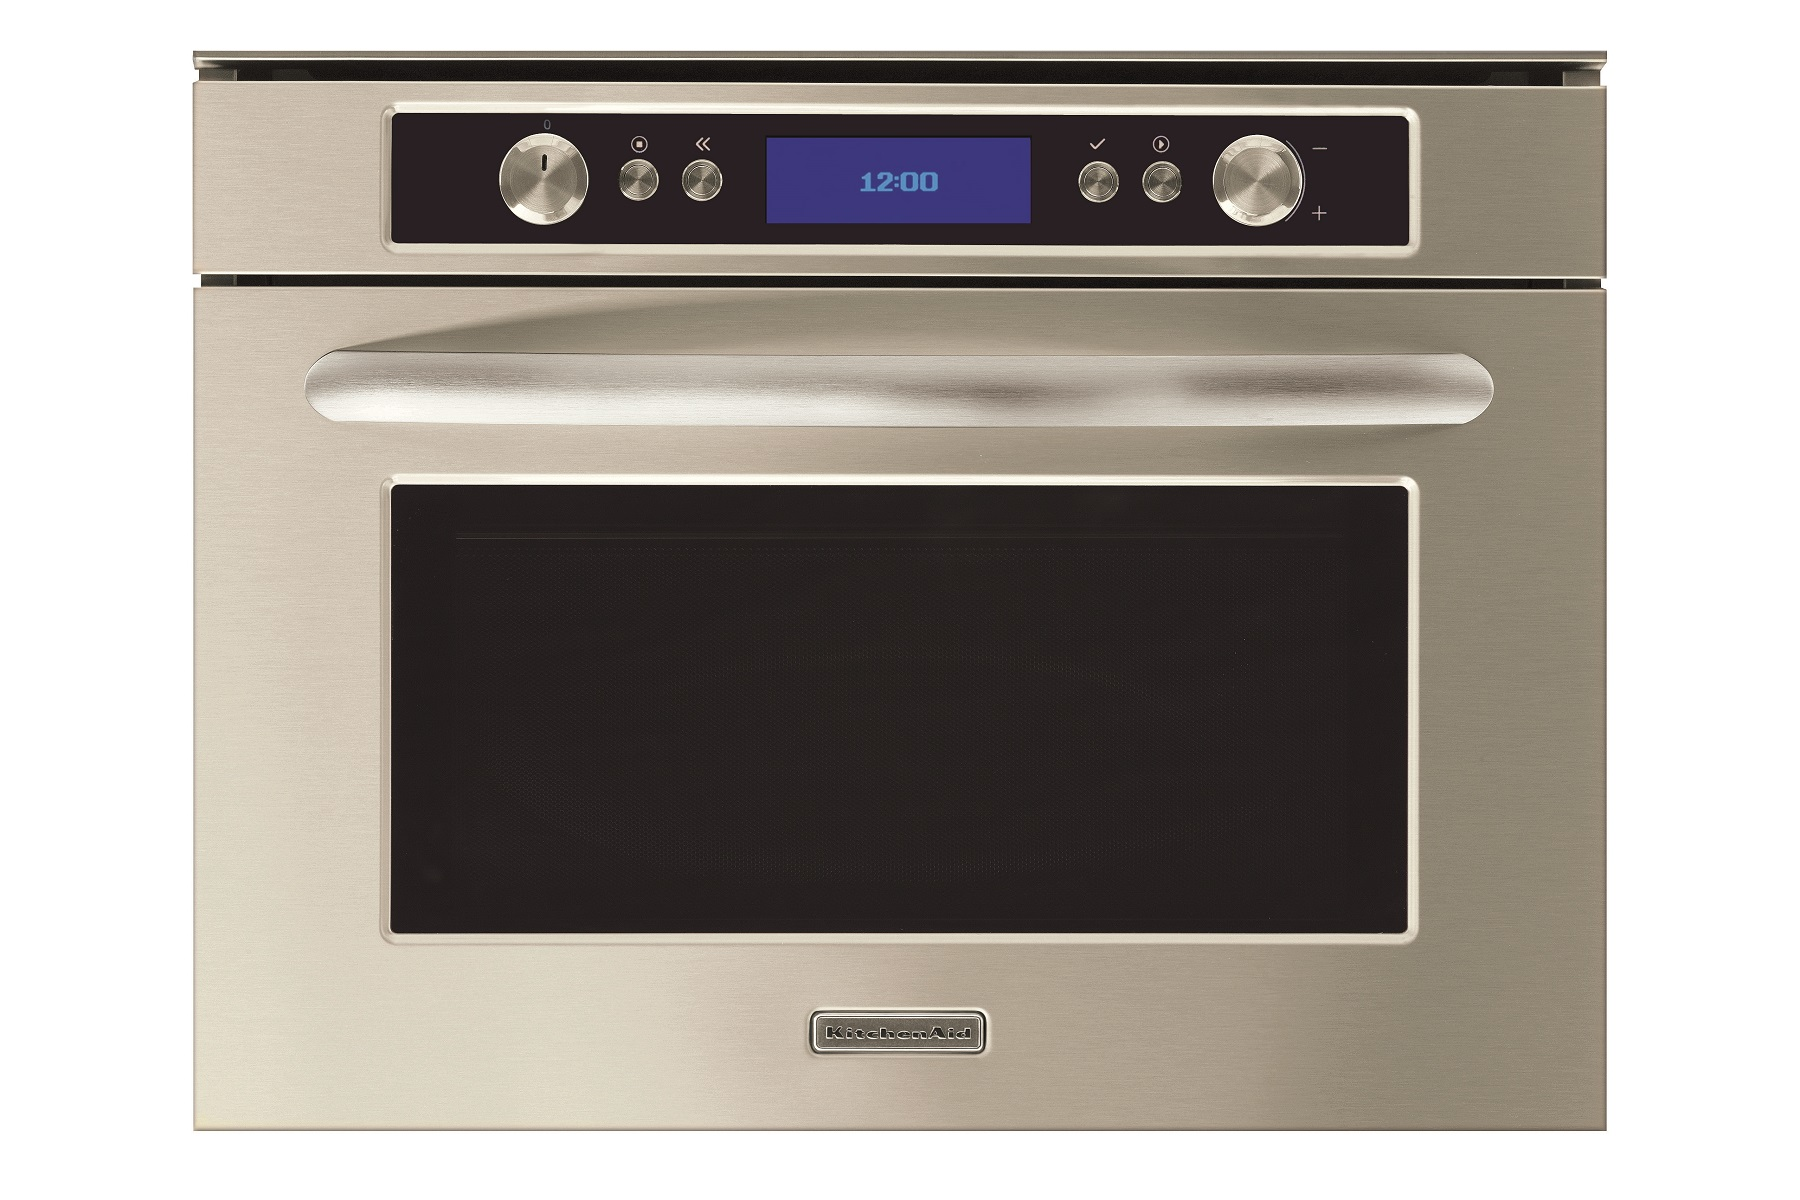 Whirlpool Kitchenaid Built In Eco Mode Microwave Oven Frontal